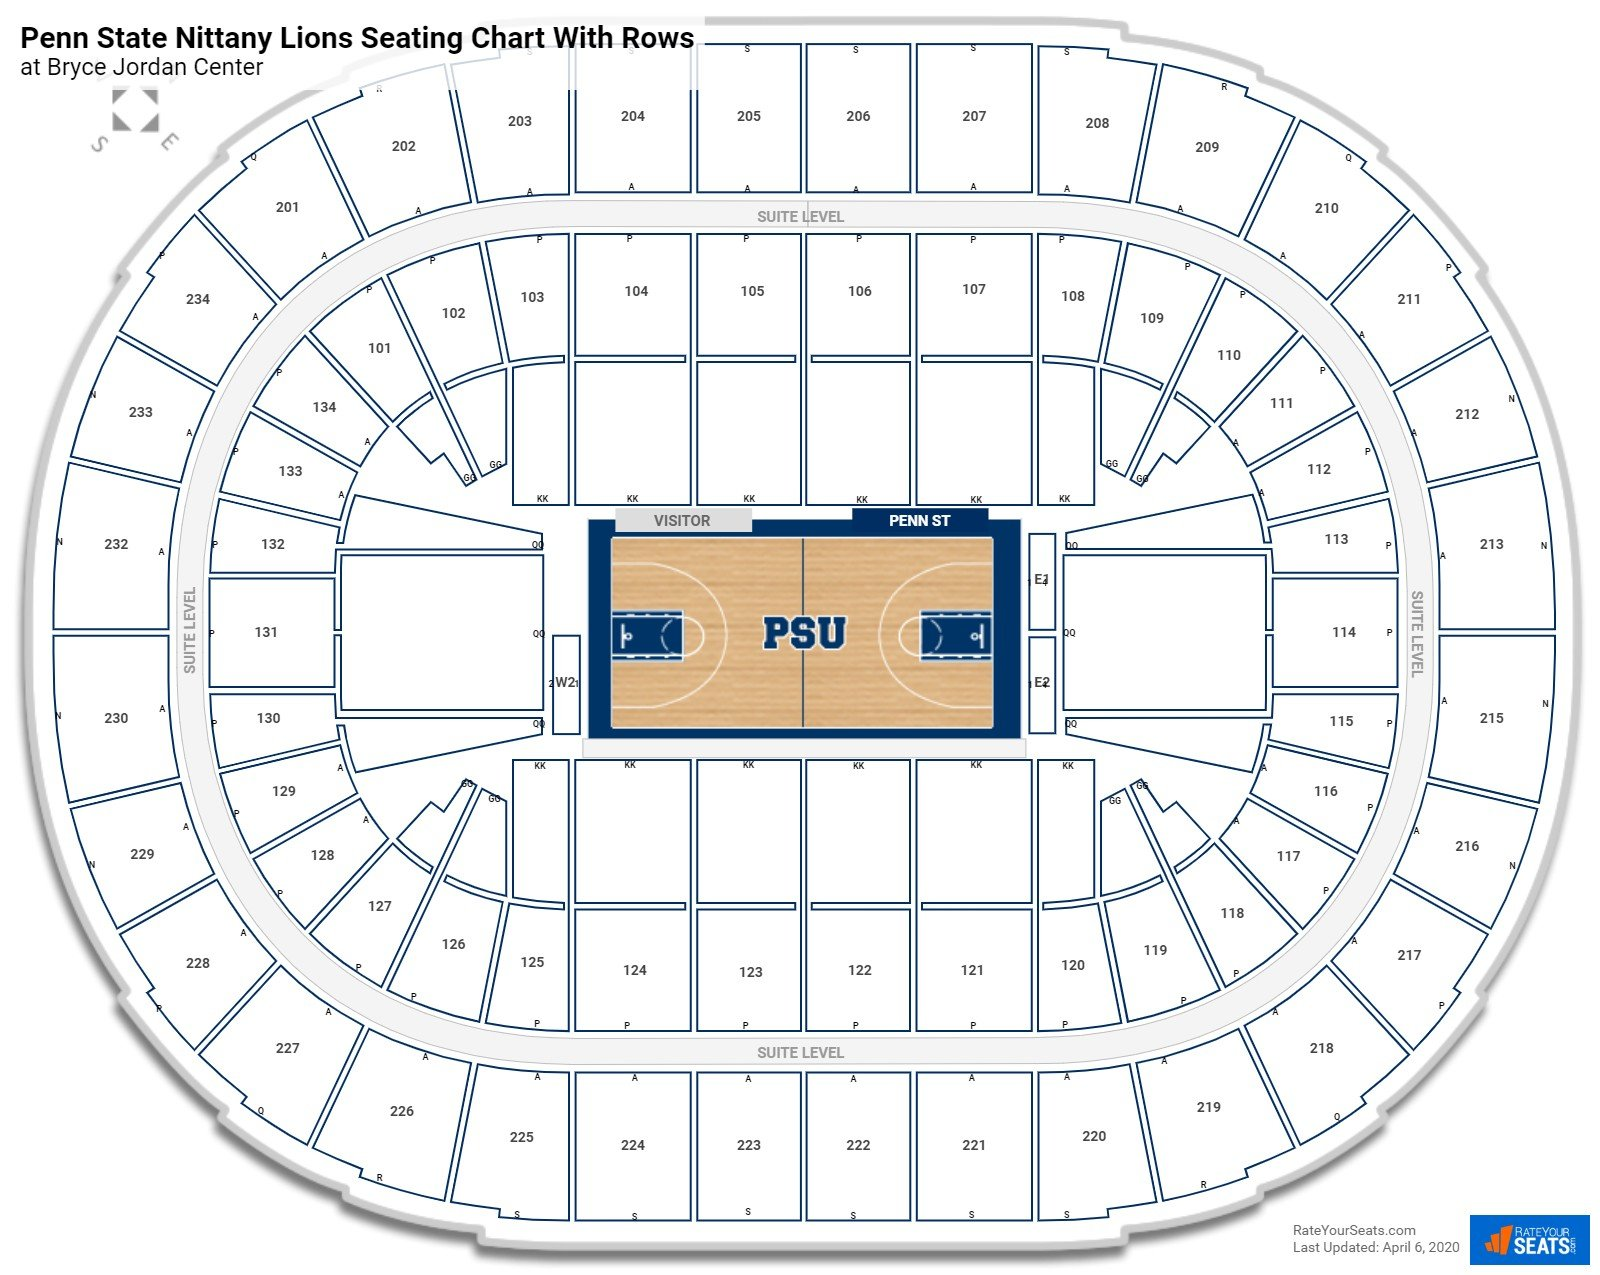 Bryce Jordan Center seating chart with rows basketball